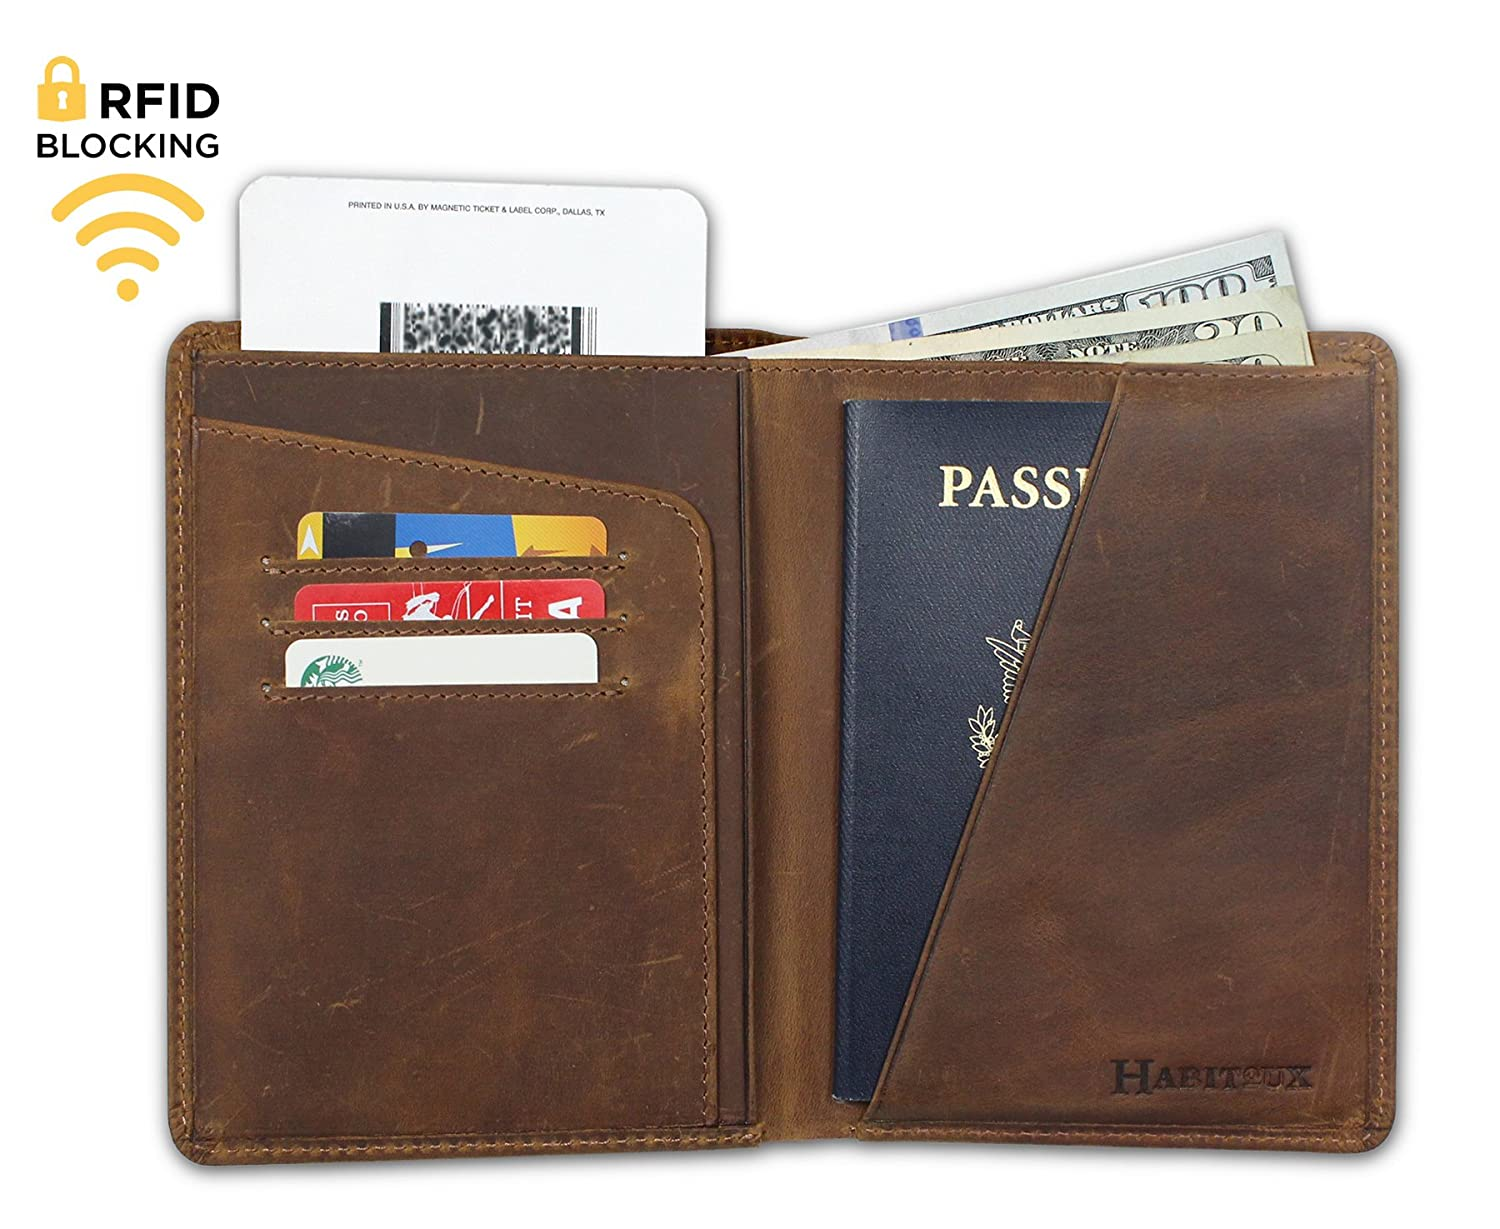 RFID Blocking Genuine Crazy Horse Leather Travel Passport Wallet (Dark Brown) (Black)